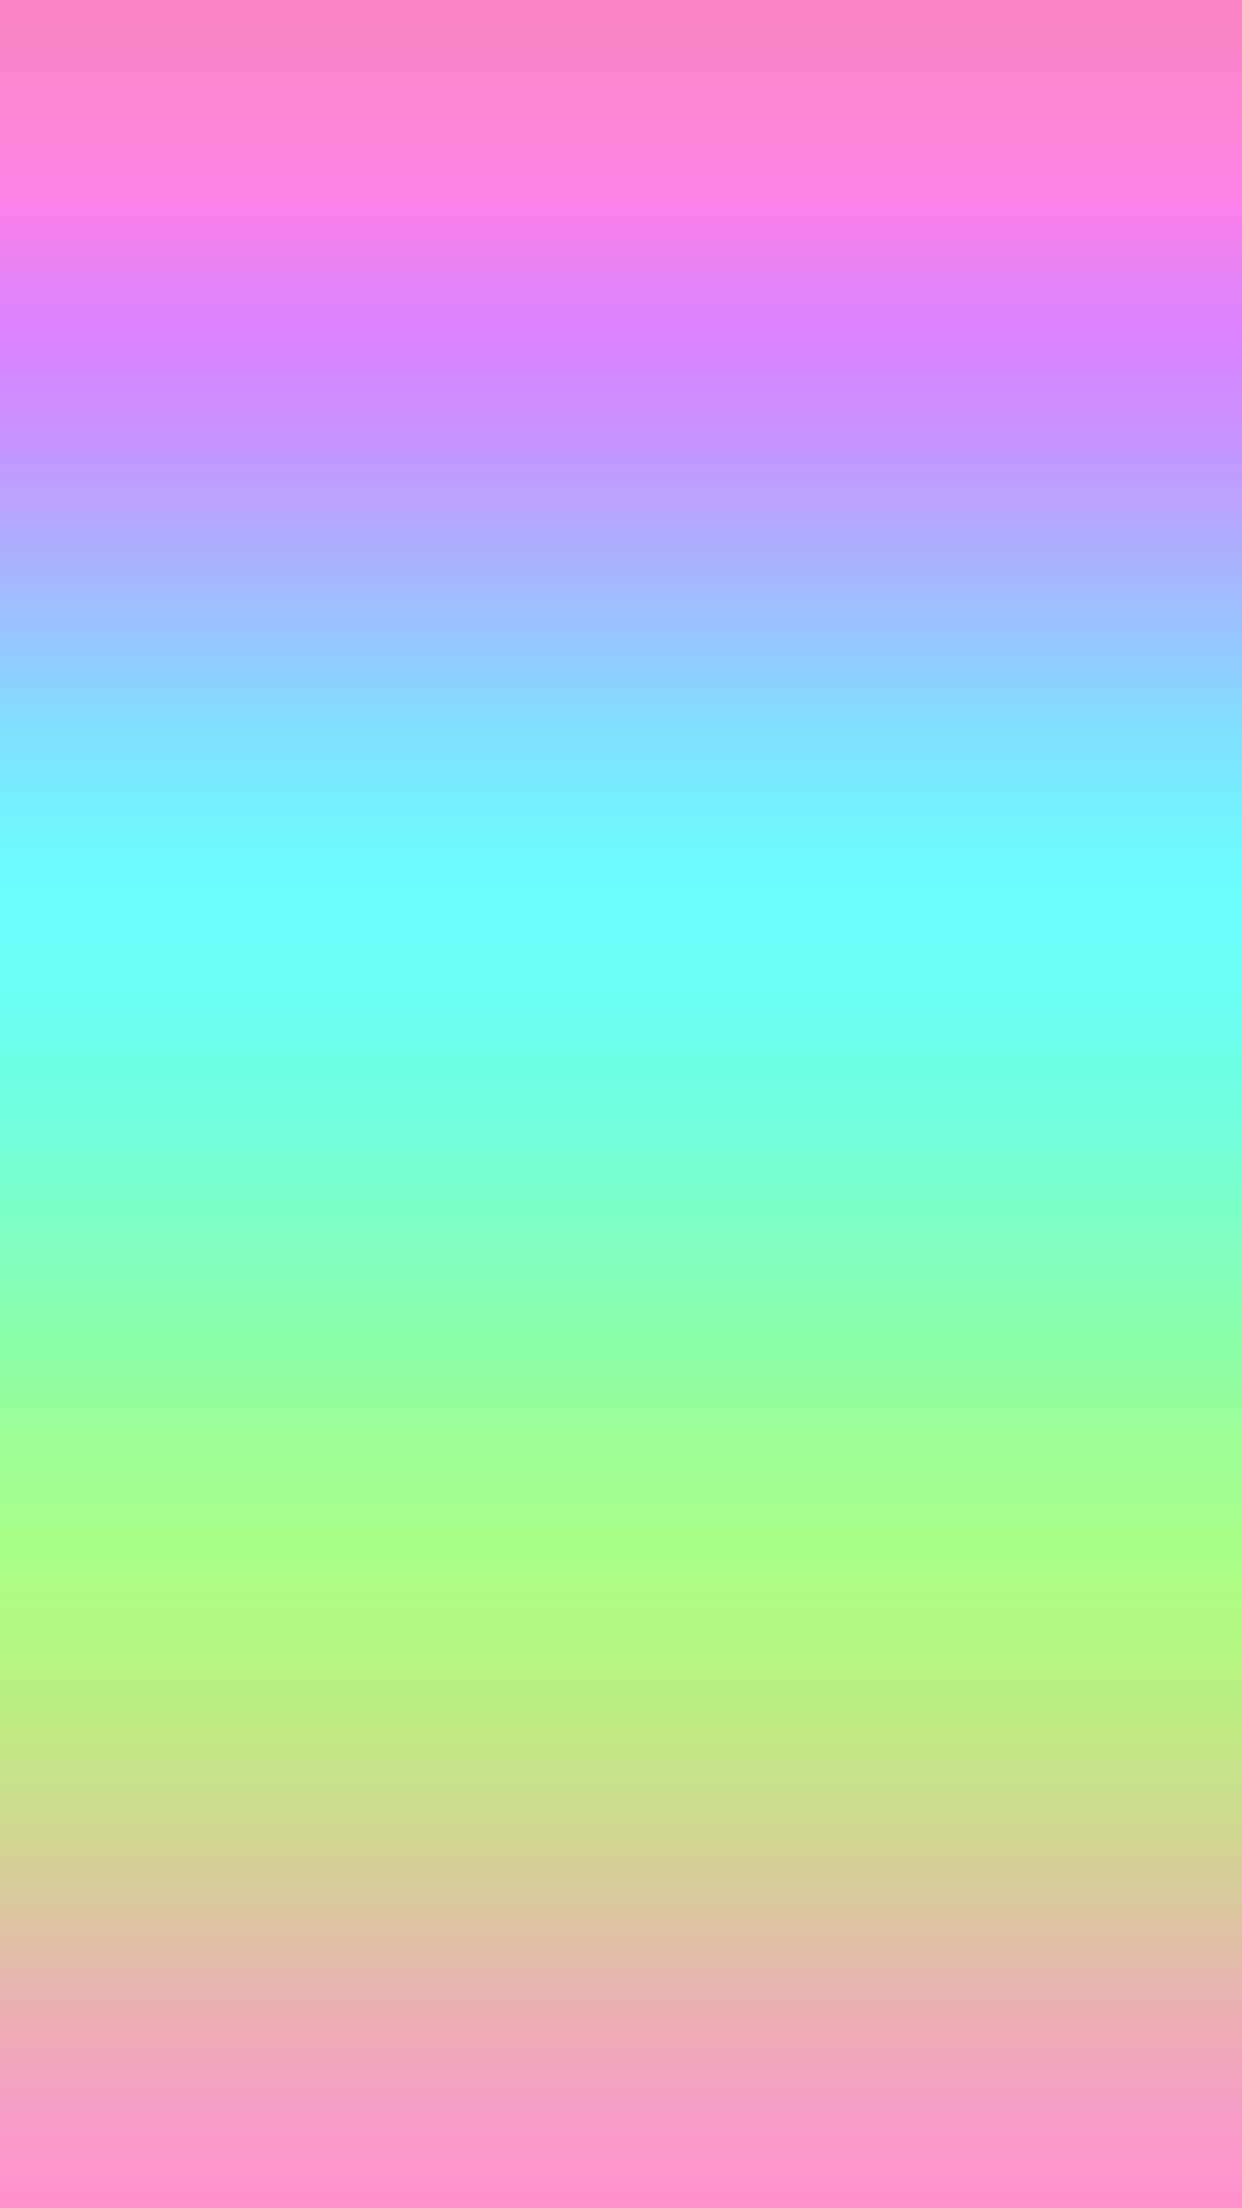 1242x2208 Gradient, ombre, pink, blue, purple, green, wallpaper, hd,